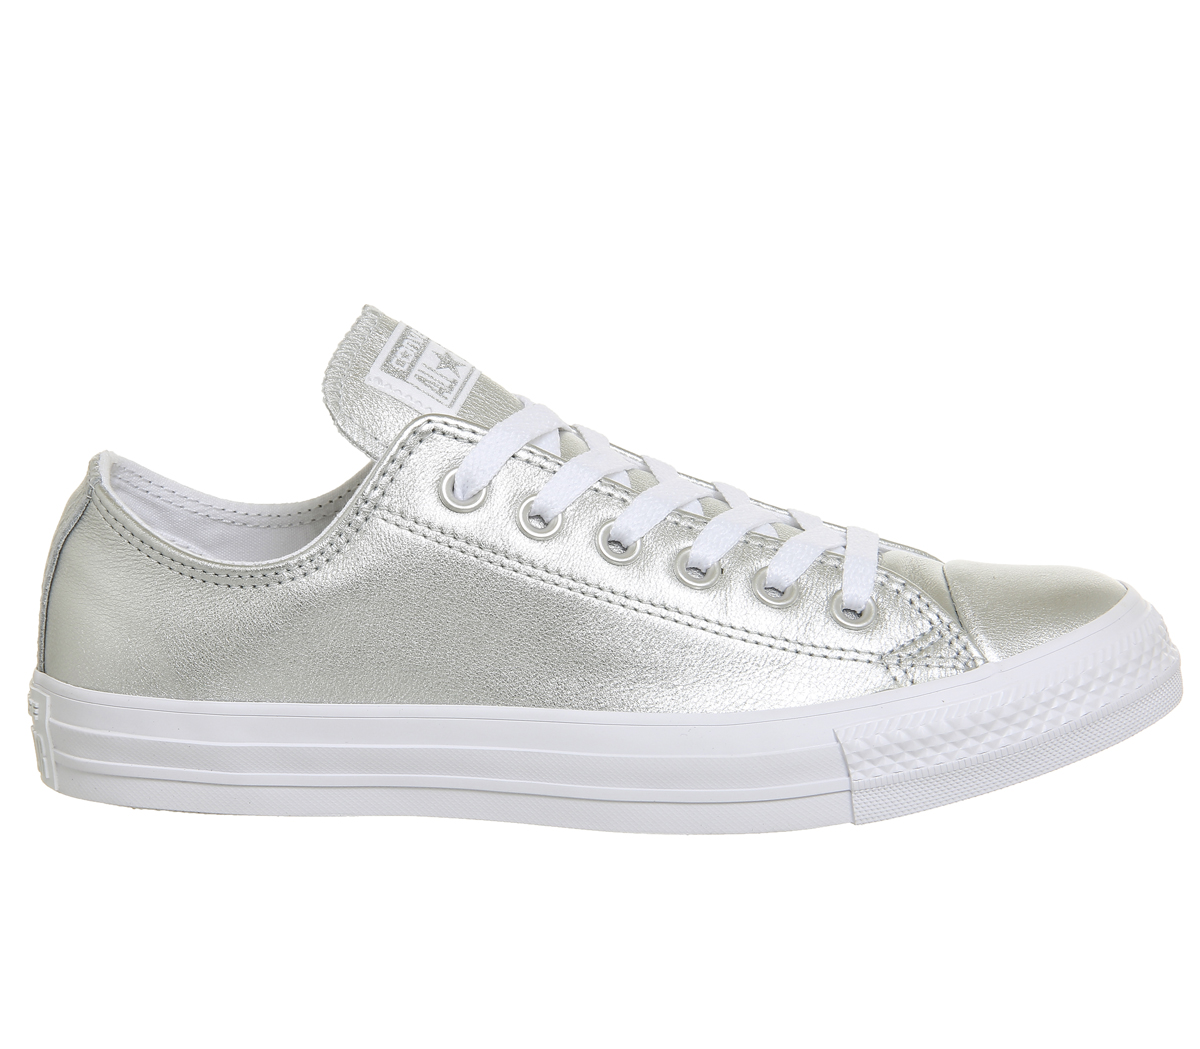 c110e7d13ef19 Sentinel Womens Converse All Star Low Leather Pure Silver White Trainers  Shoes